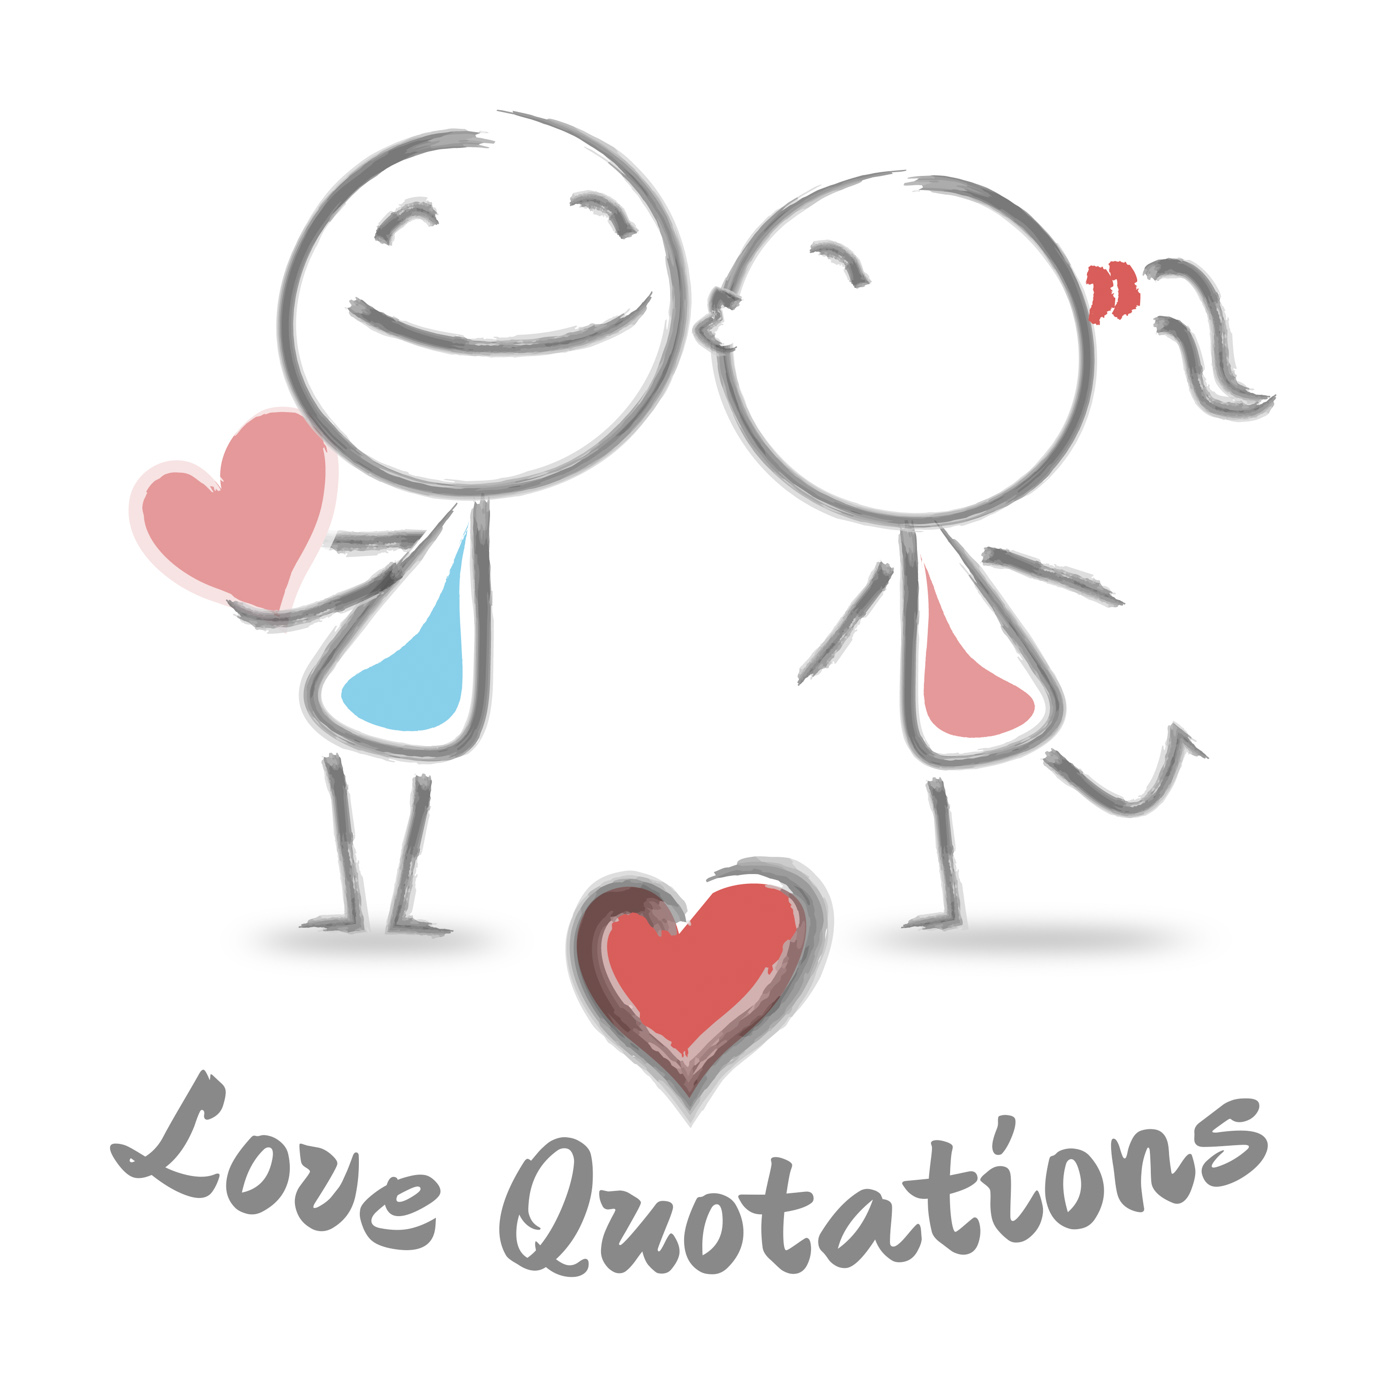 Love quotations shows loving extract and quote photo